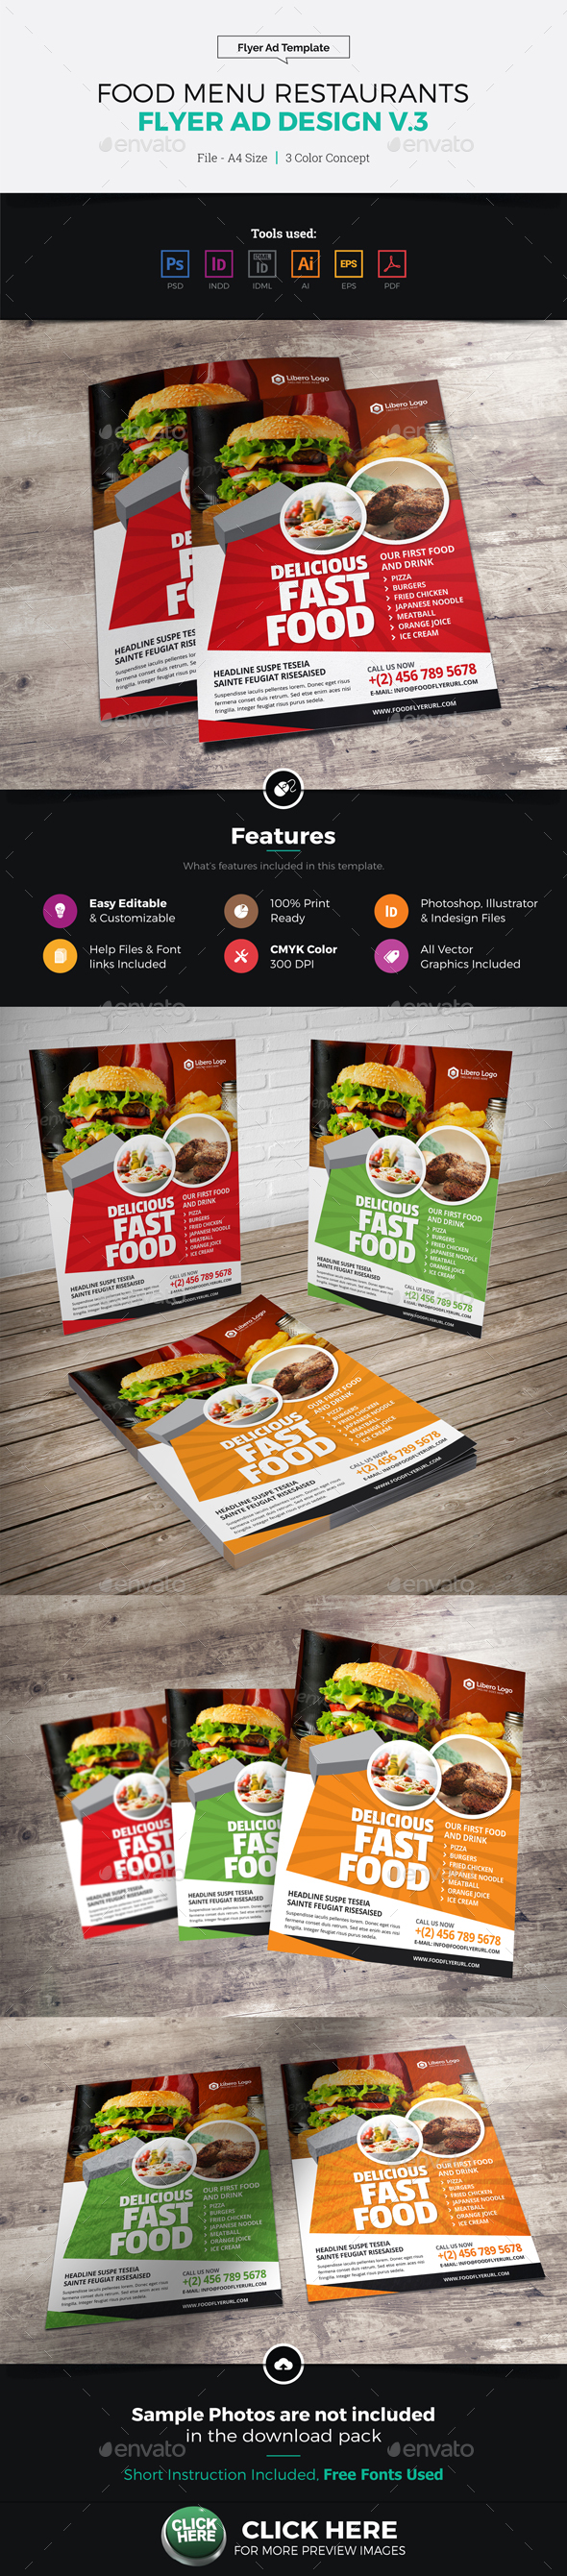 Food Menu Restaurants Flyer Ad Design v3 - Restaurant Flyers